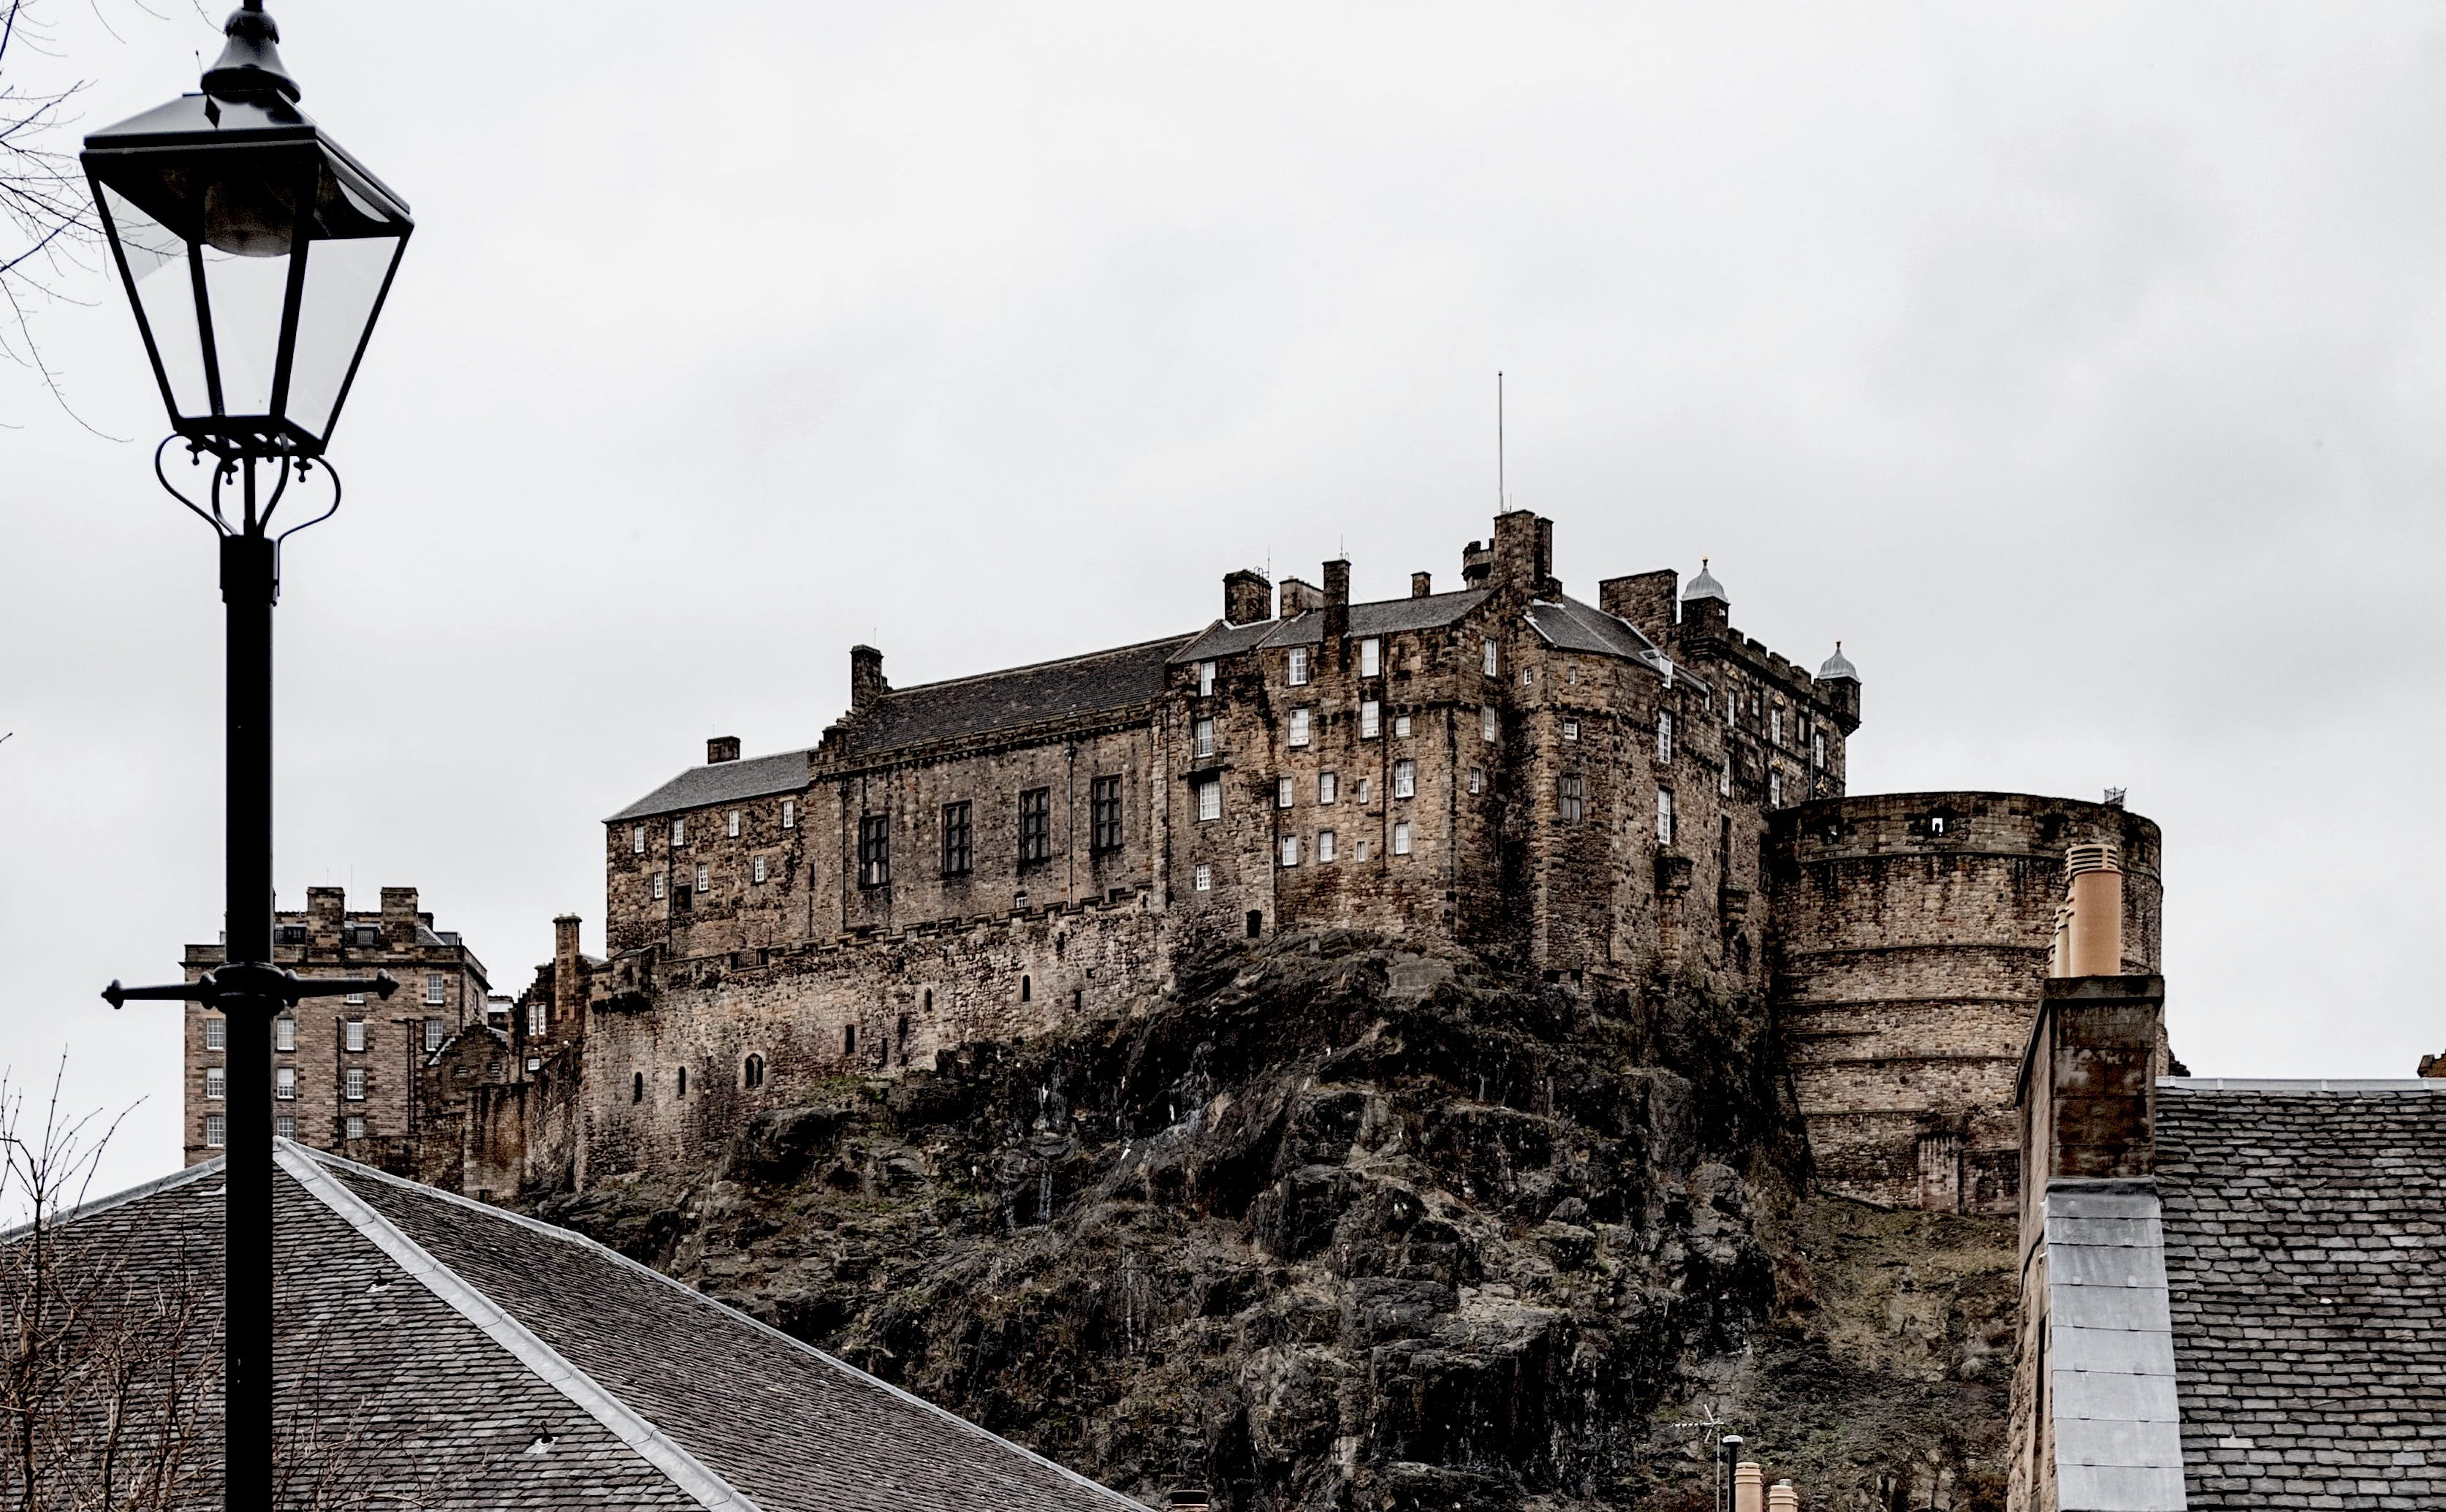 Ghosts of Edinburgh: A Bloody Past image